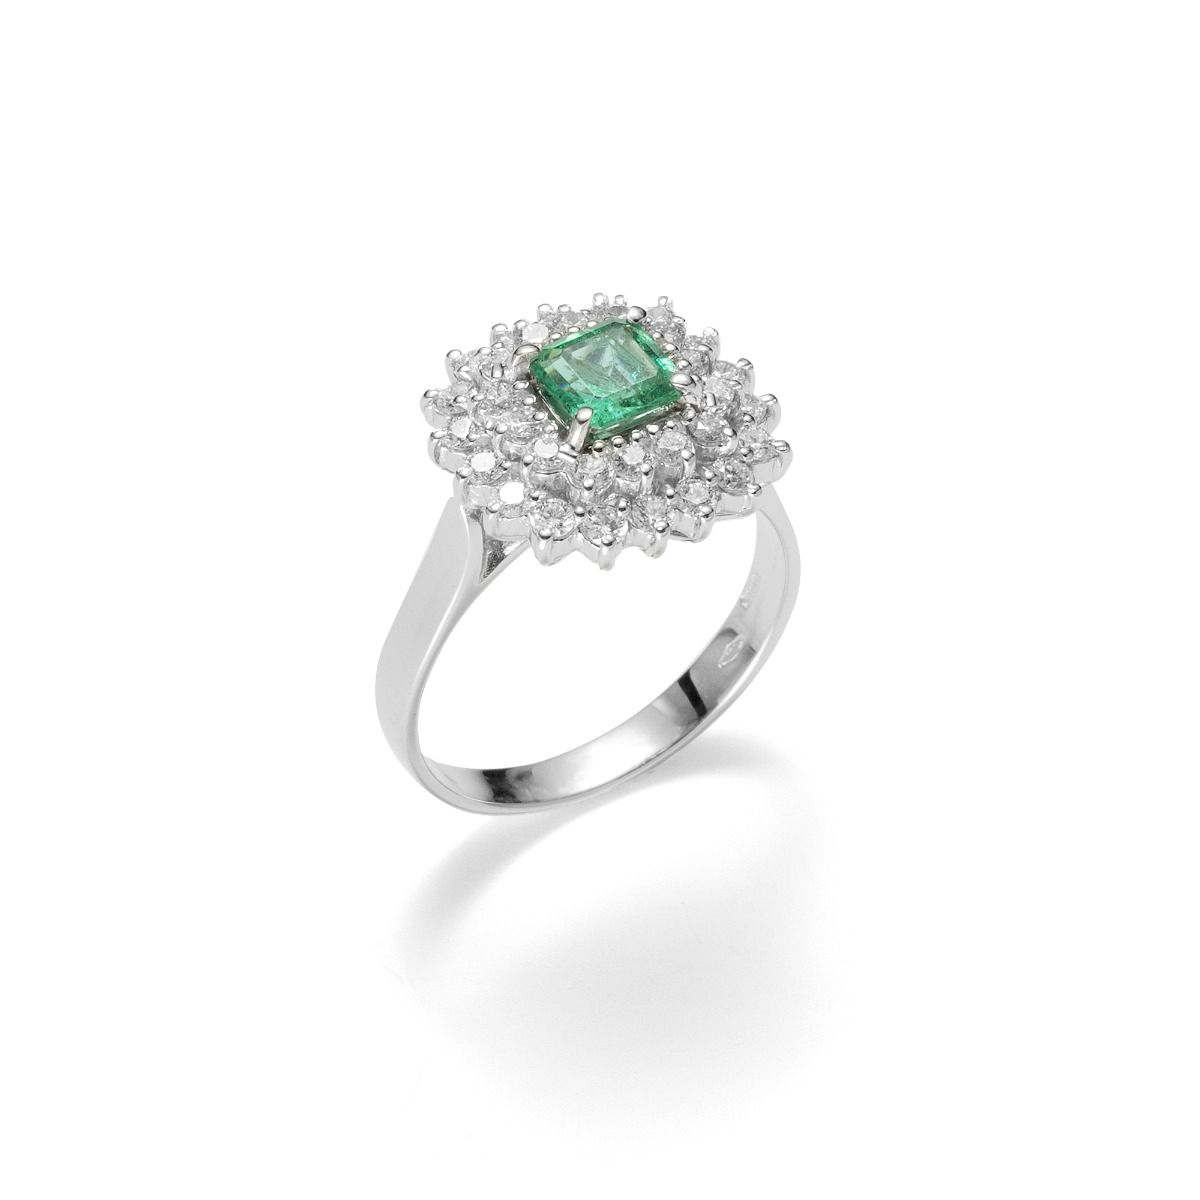 Radiant-Cut Emerald Ring with Double Diamond Halo